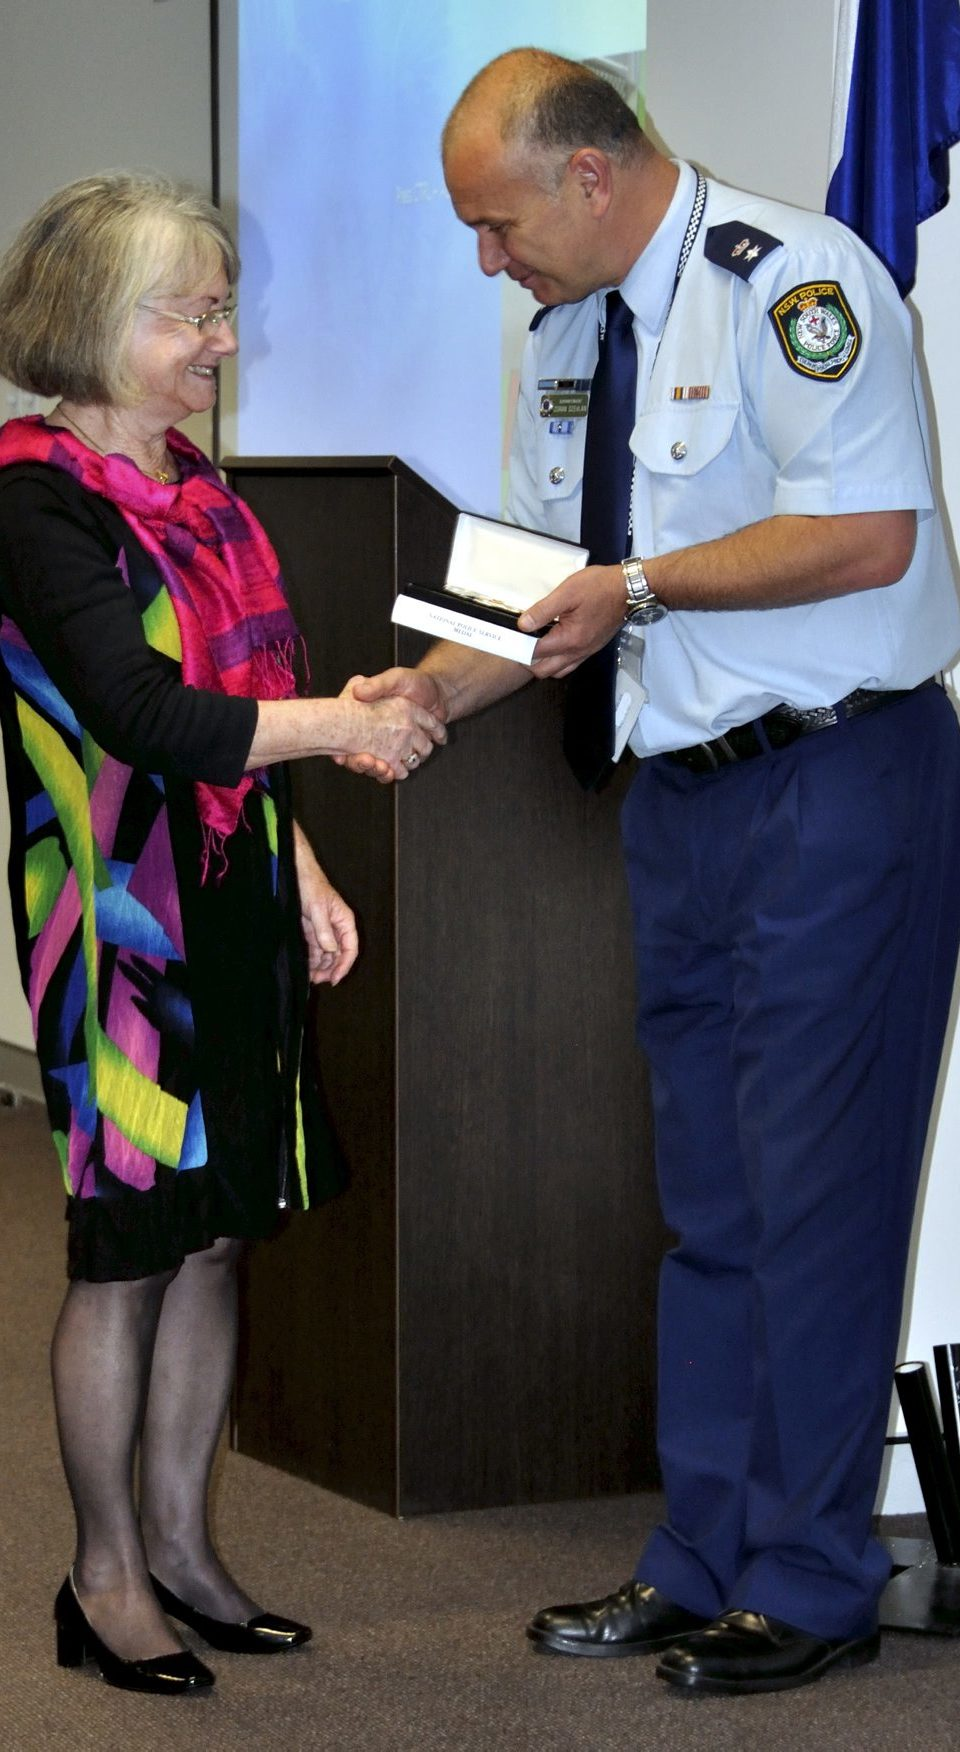 Susan GOOD - wife of John Stafford GOOD ( R.I.P. ) accepting the Medal. https://www.australianpolice.com.au/john-stafford-good/